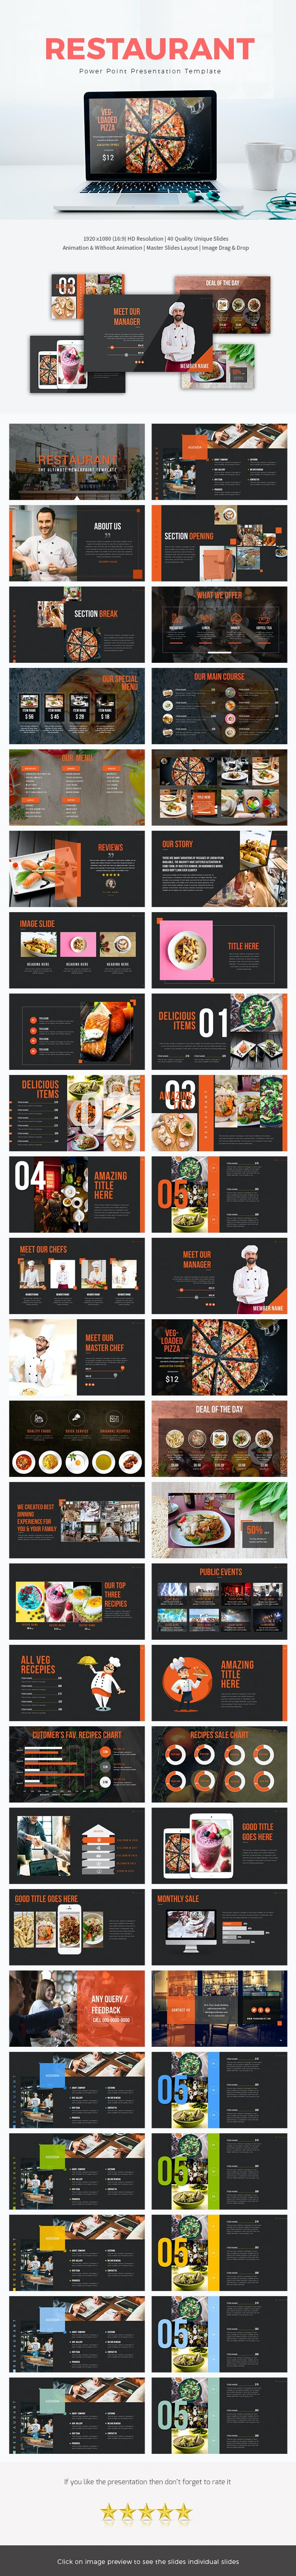 Restaurant Power Point Presentation Template - Business PowerPoint Templates